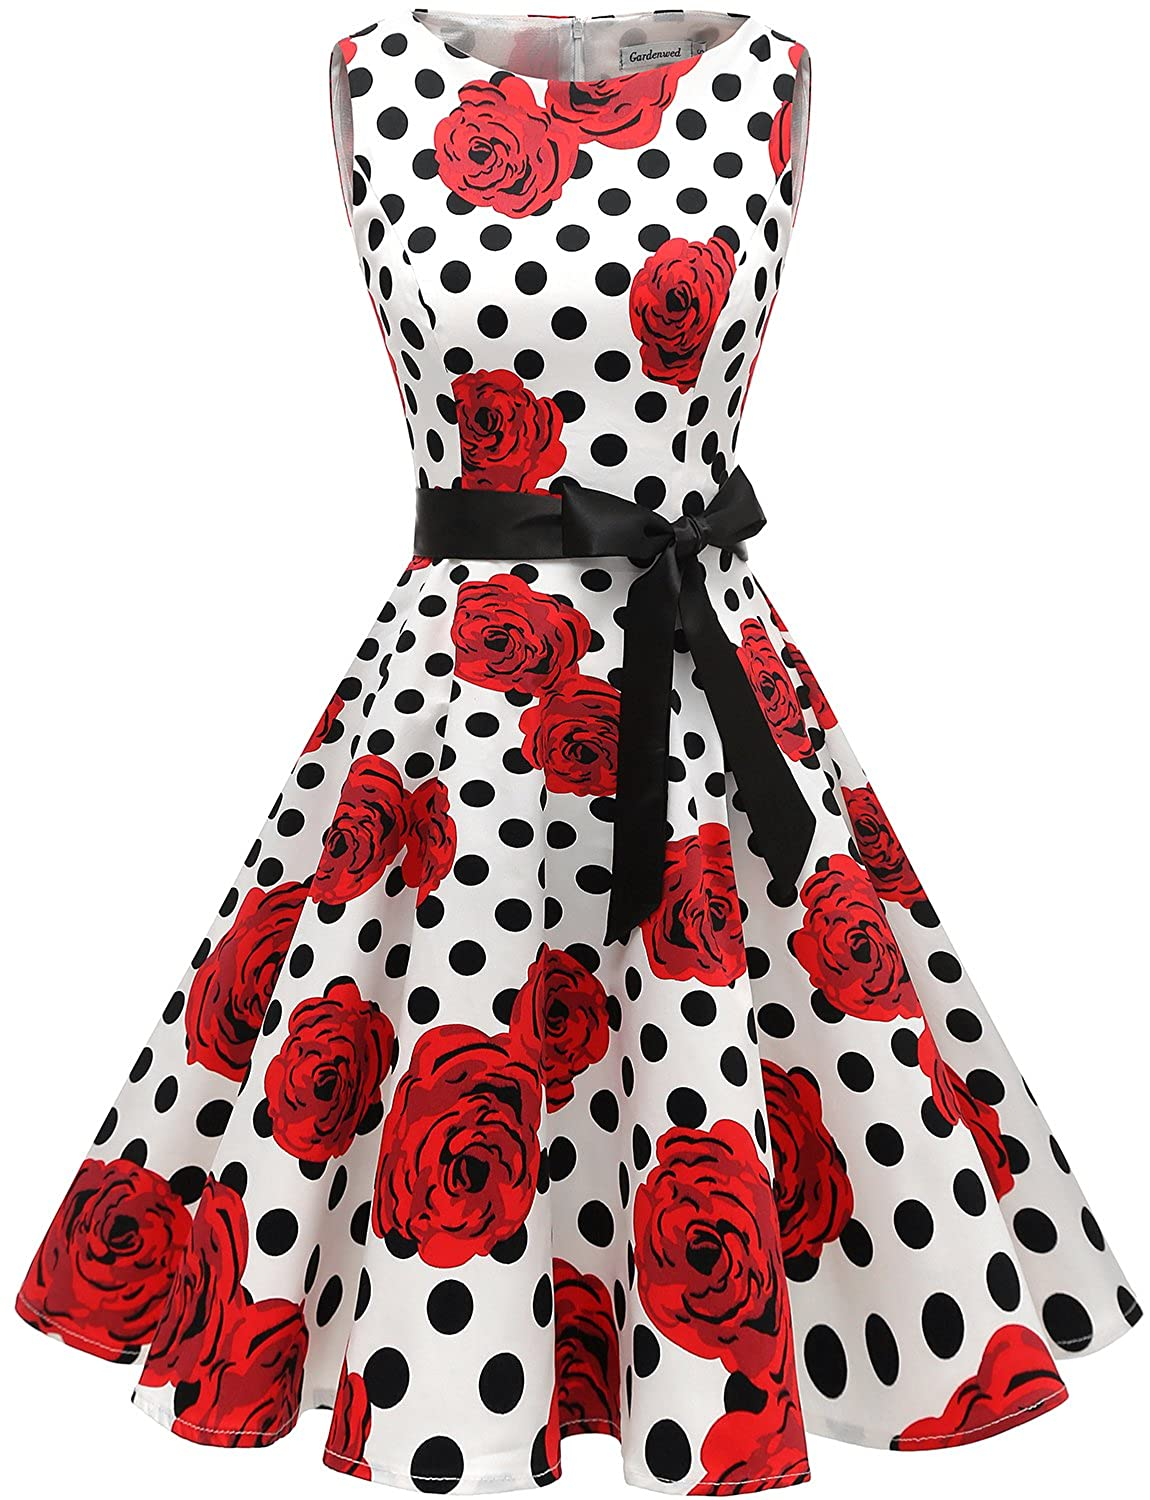 Gardenwed Women's Vintage 1950s Retro Rockabilly Swing Cocktail Dresses with Belt